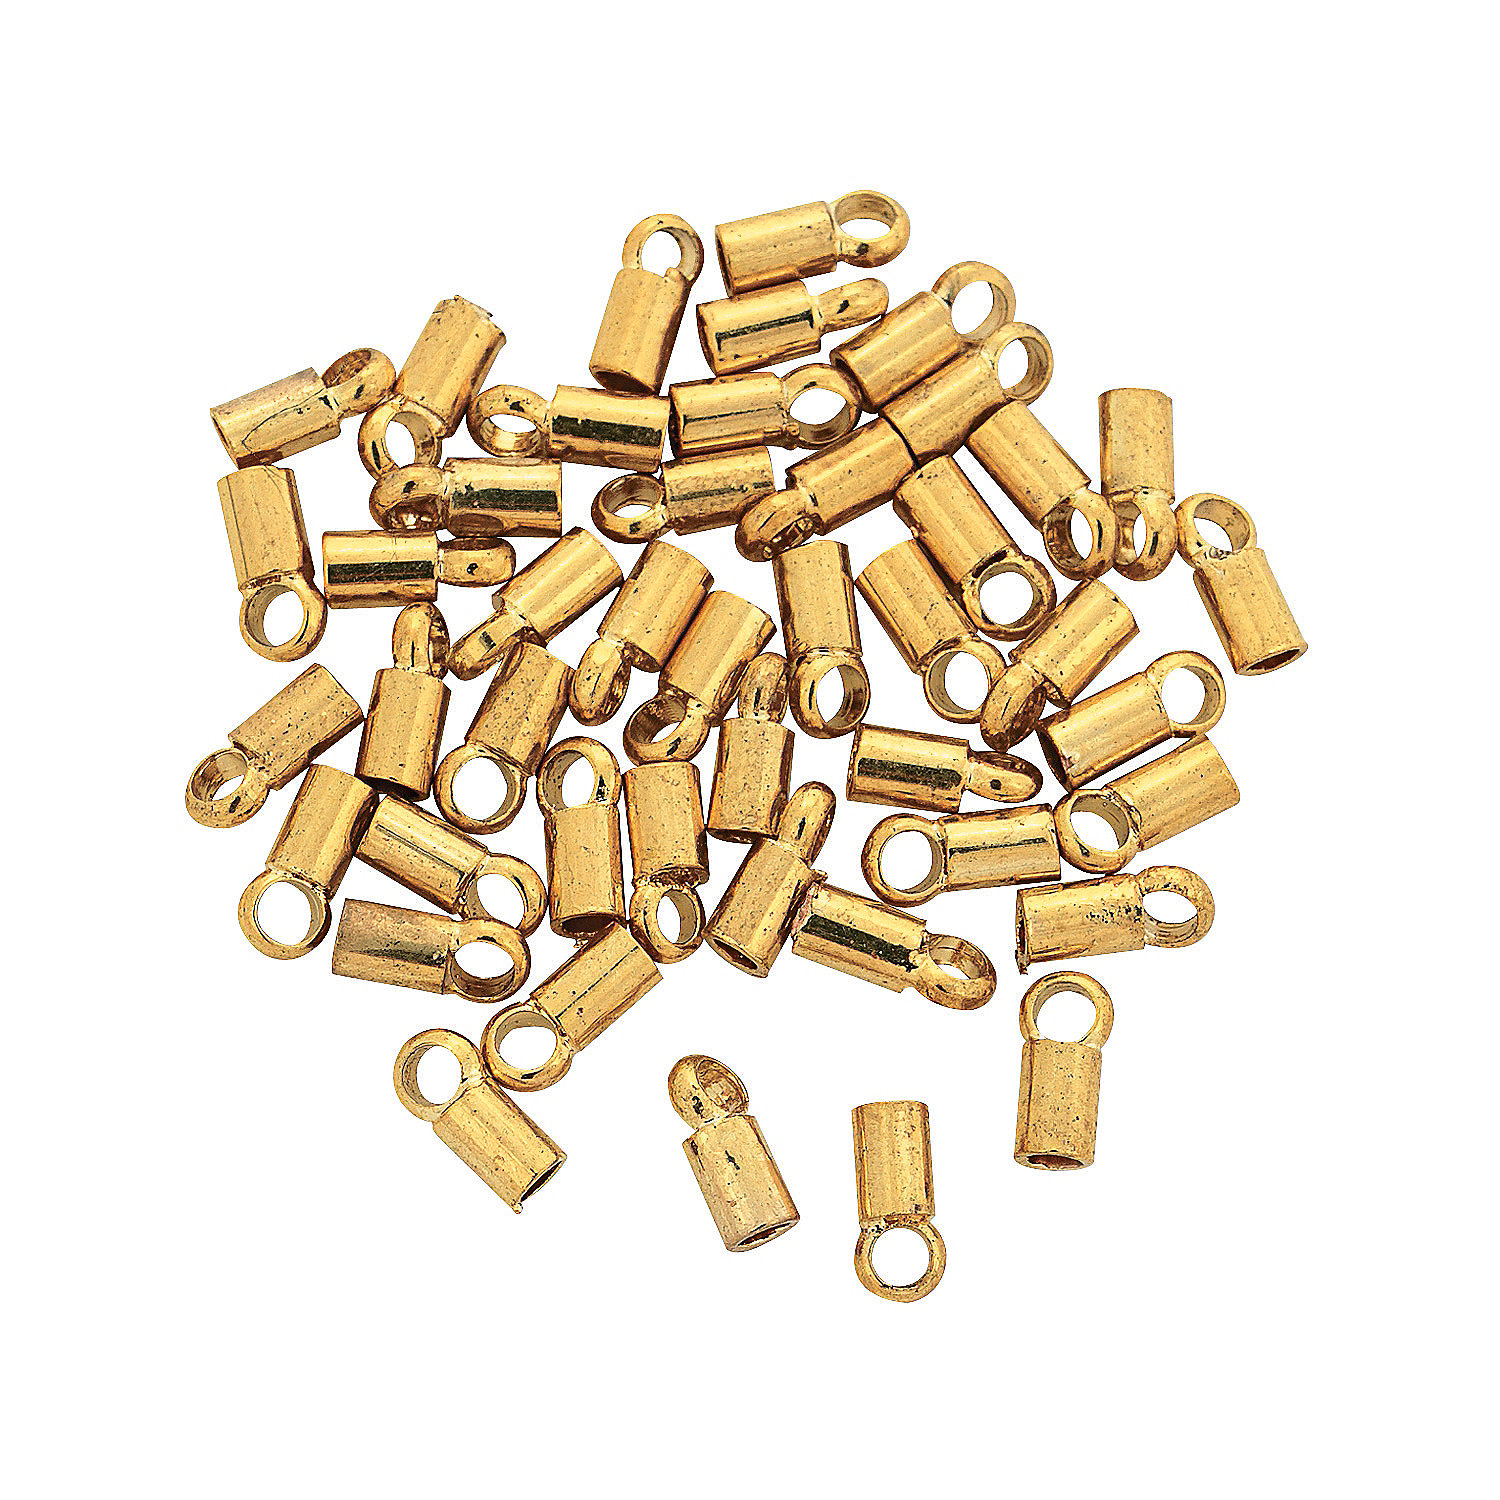 IN-68/45796 Goldtone Crimp Tubes with Loop 100 Piece(s)